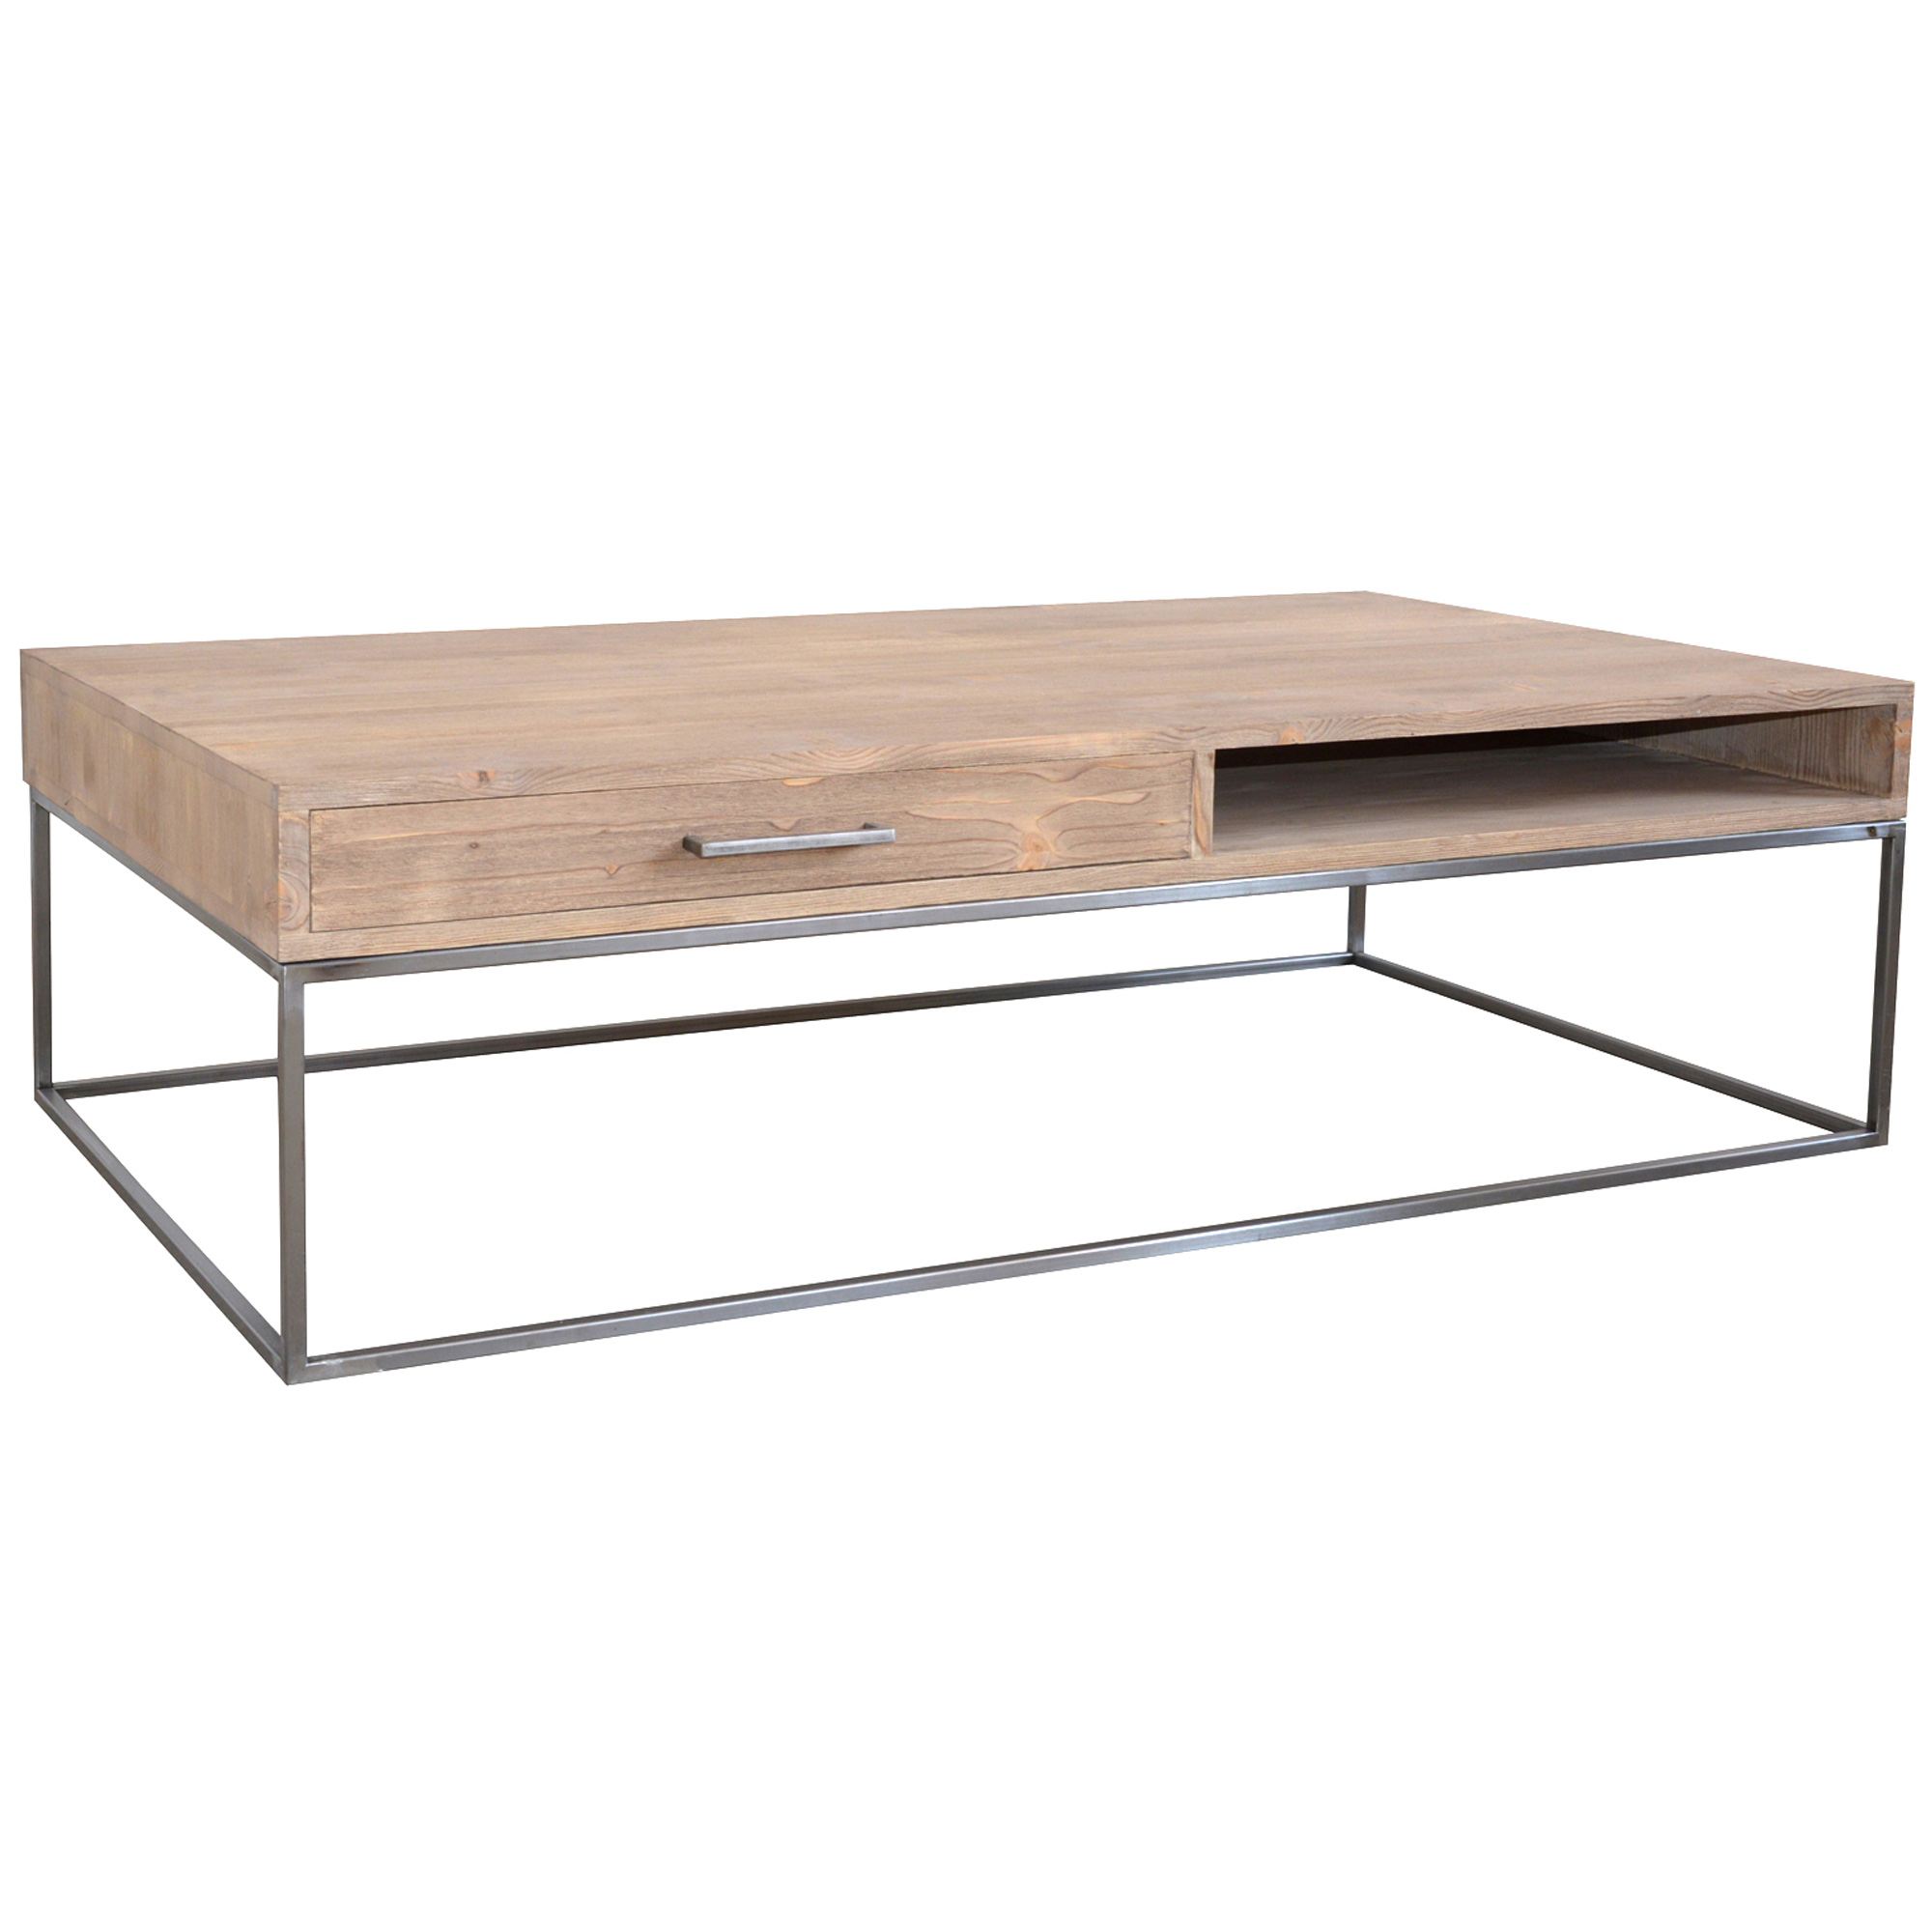 French Coffee Table With Metal Bar Legs No 44 Furniture Cobham: aluminum coffee table legs